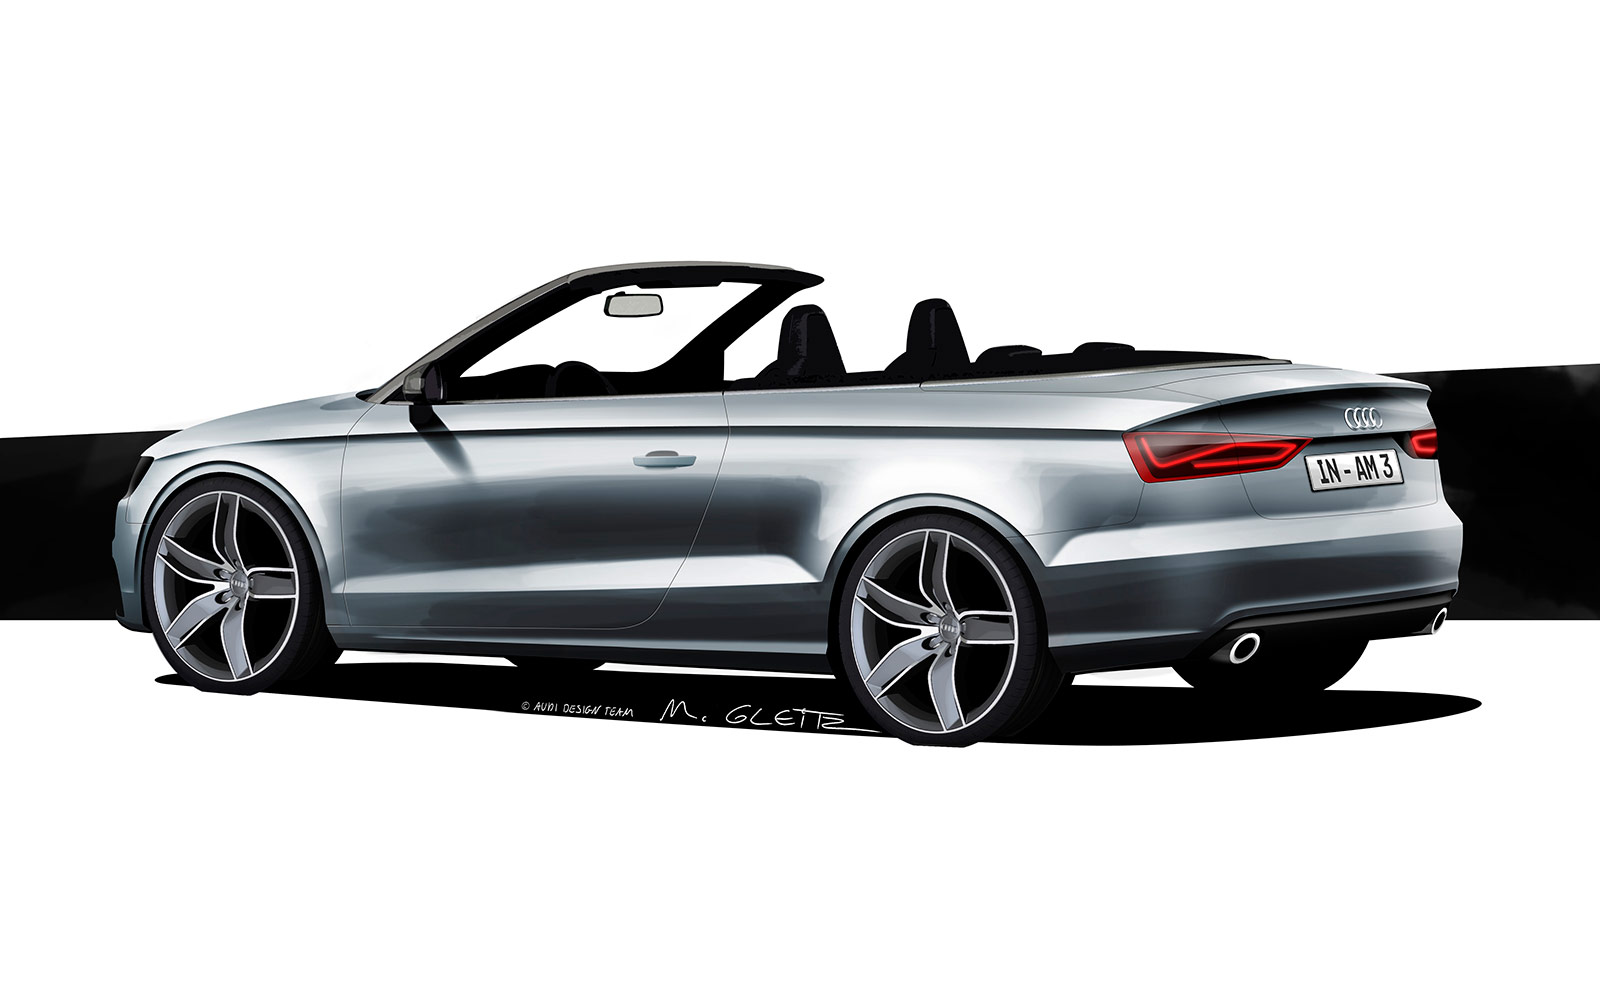 audi a3 cabriolet design sketch car body design. Black Bedroom Furniture Sets. Home Design Ideas